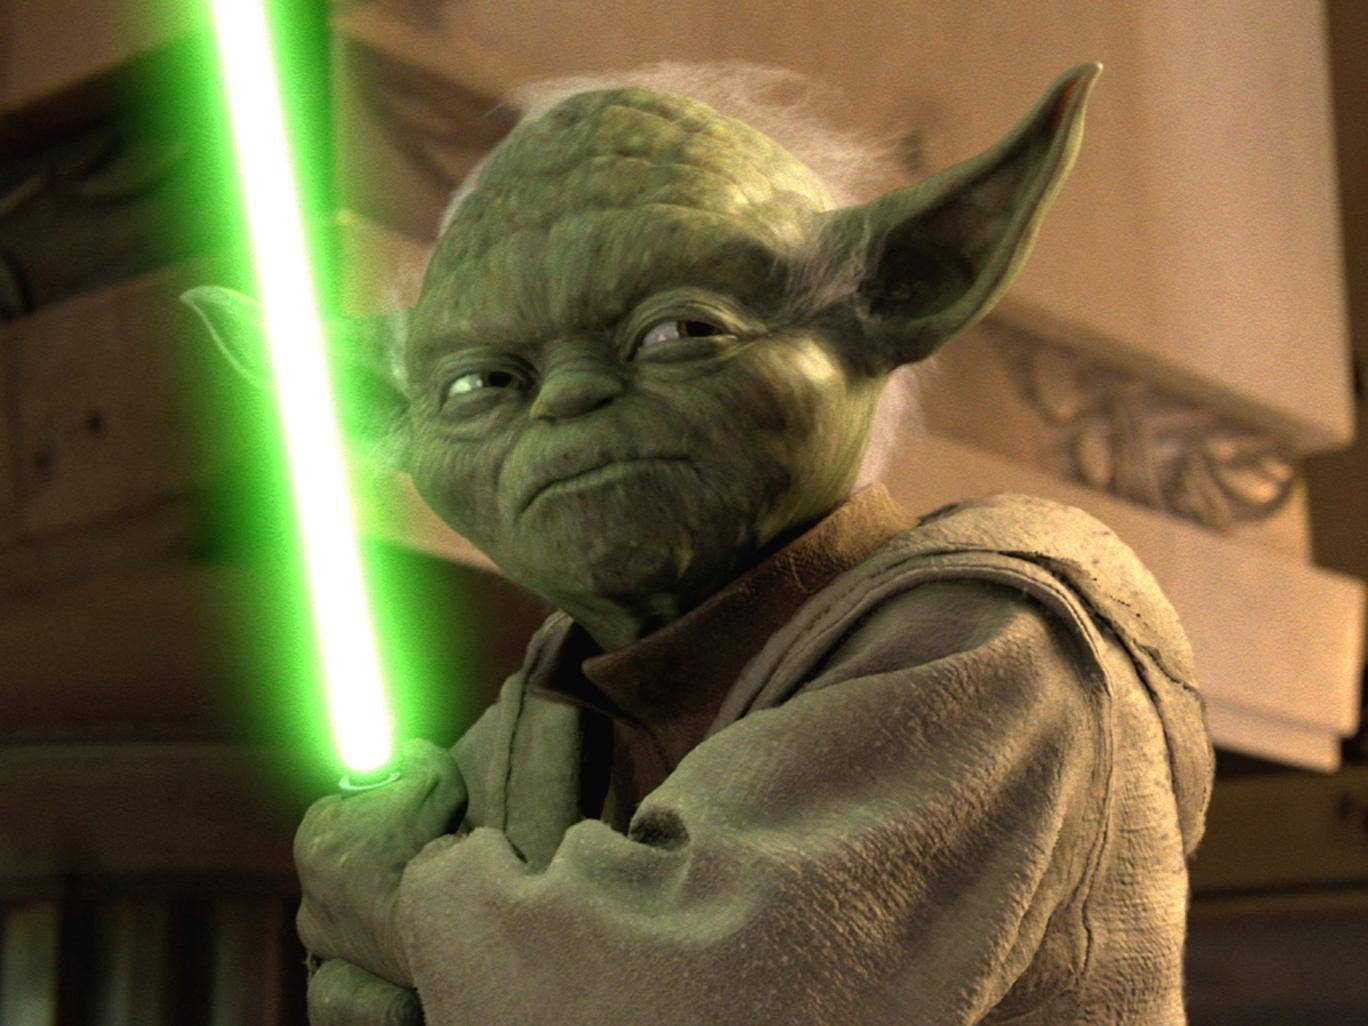 Yoda's been around for the best part of a millennium